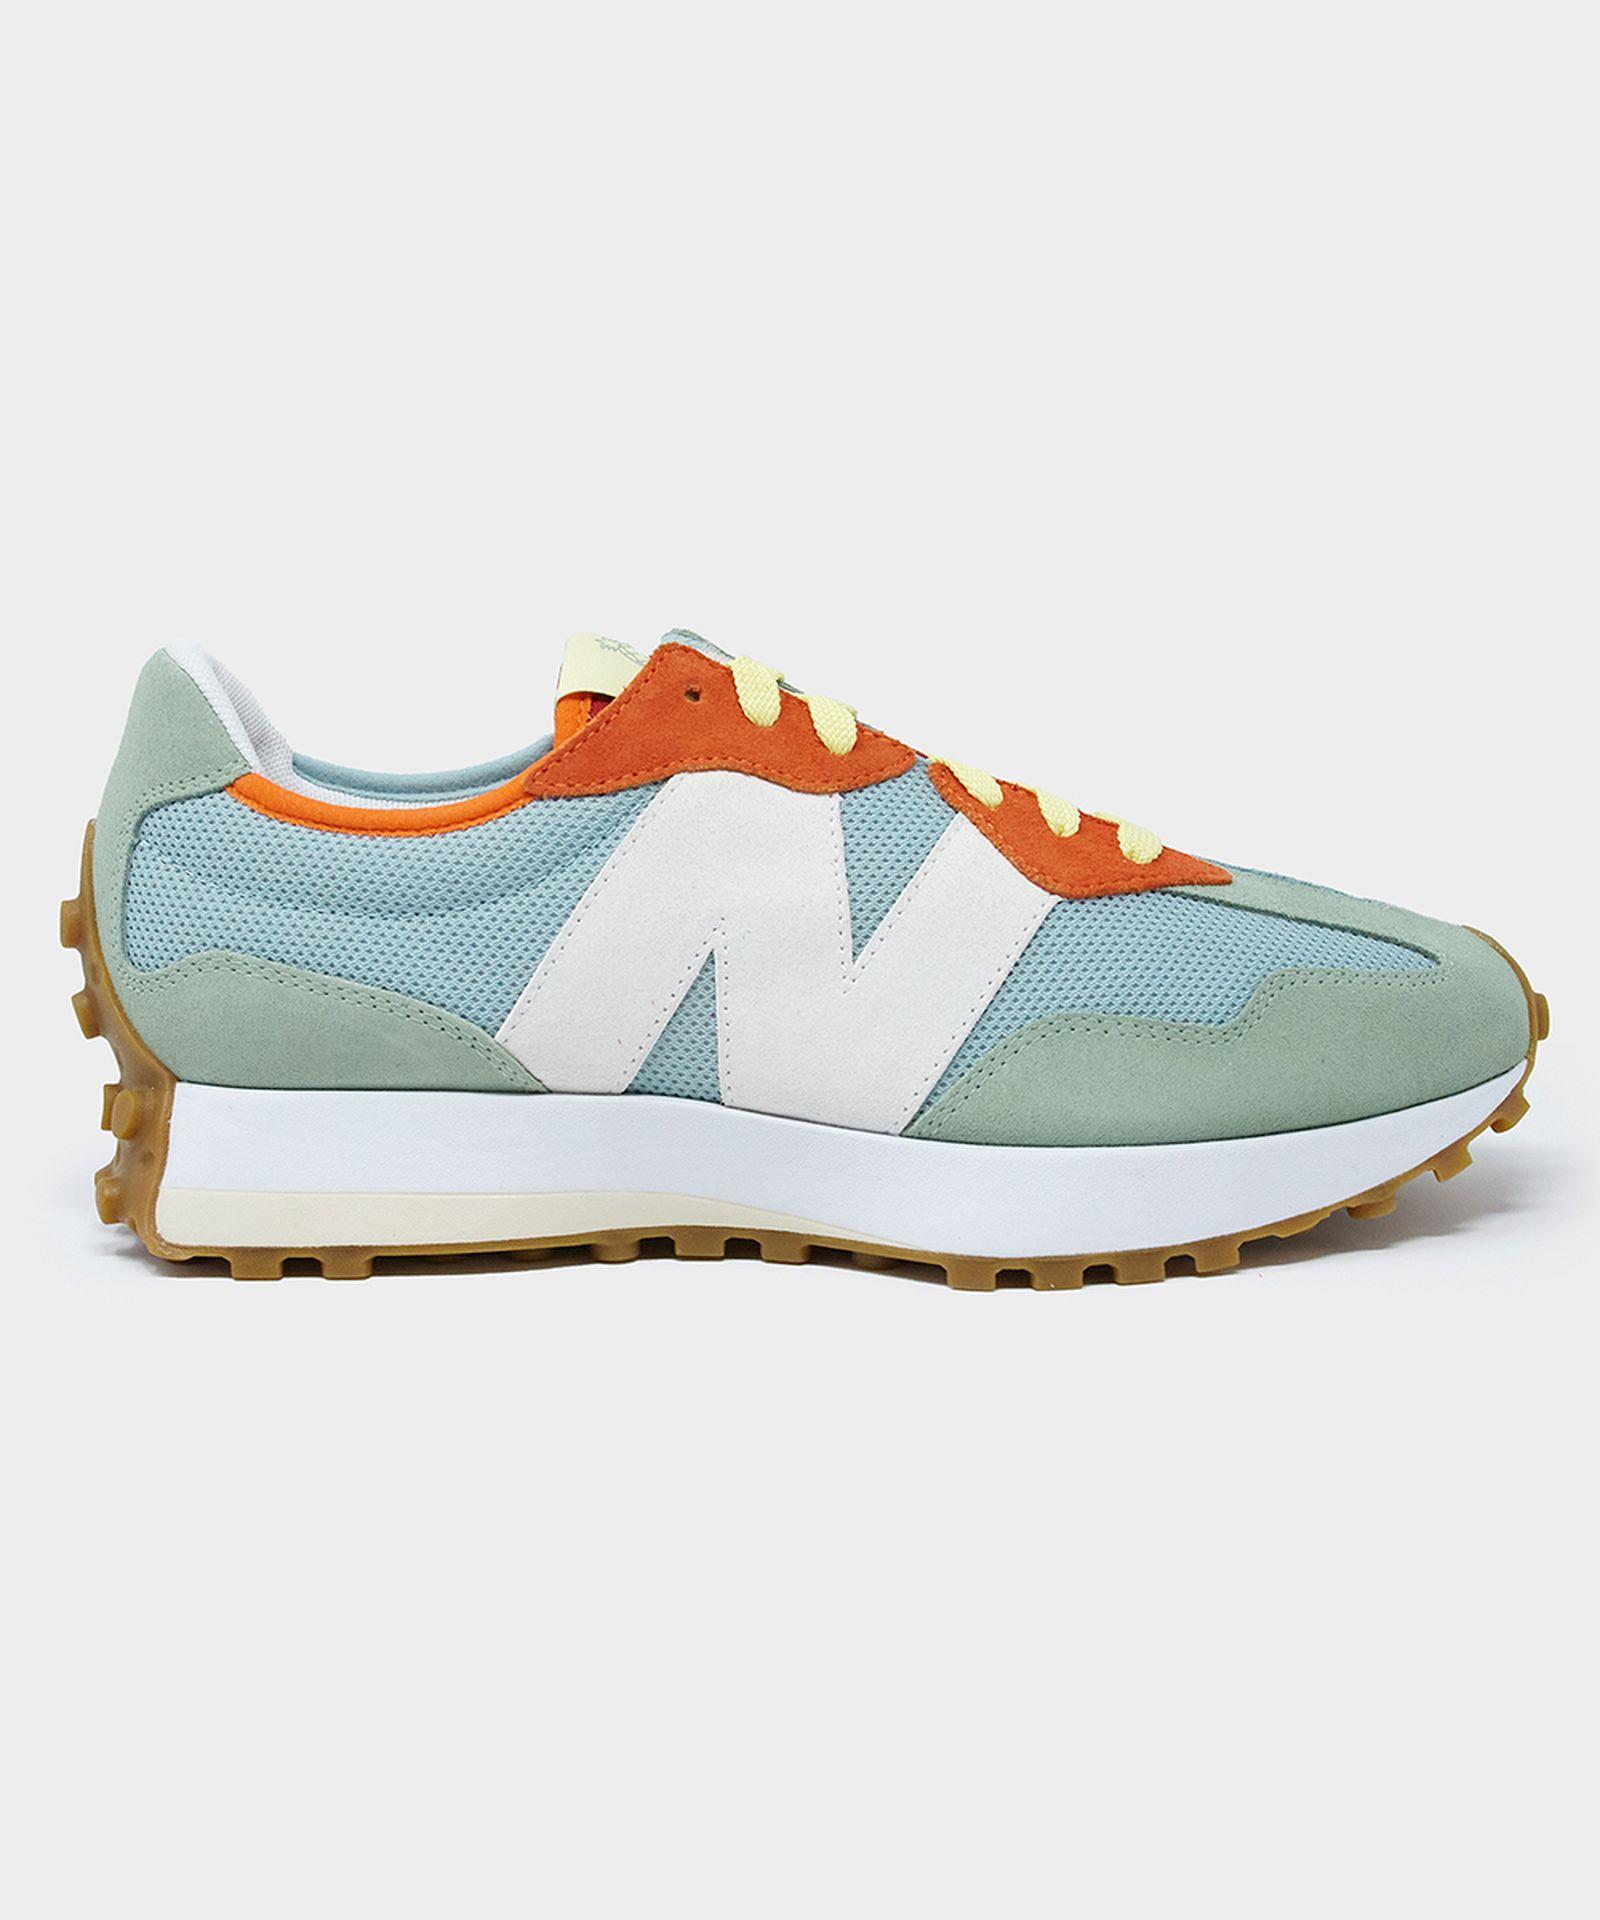 todd-snyder-new-balance-327-farmers-market-release-date-price-1-08